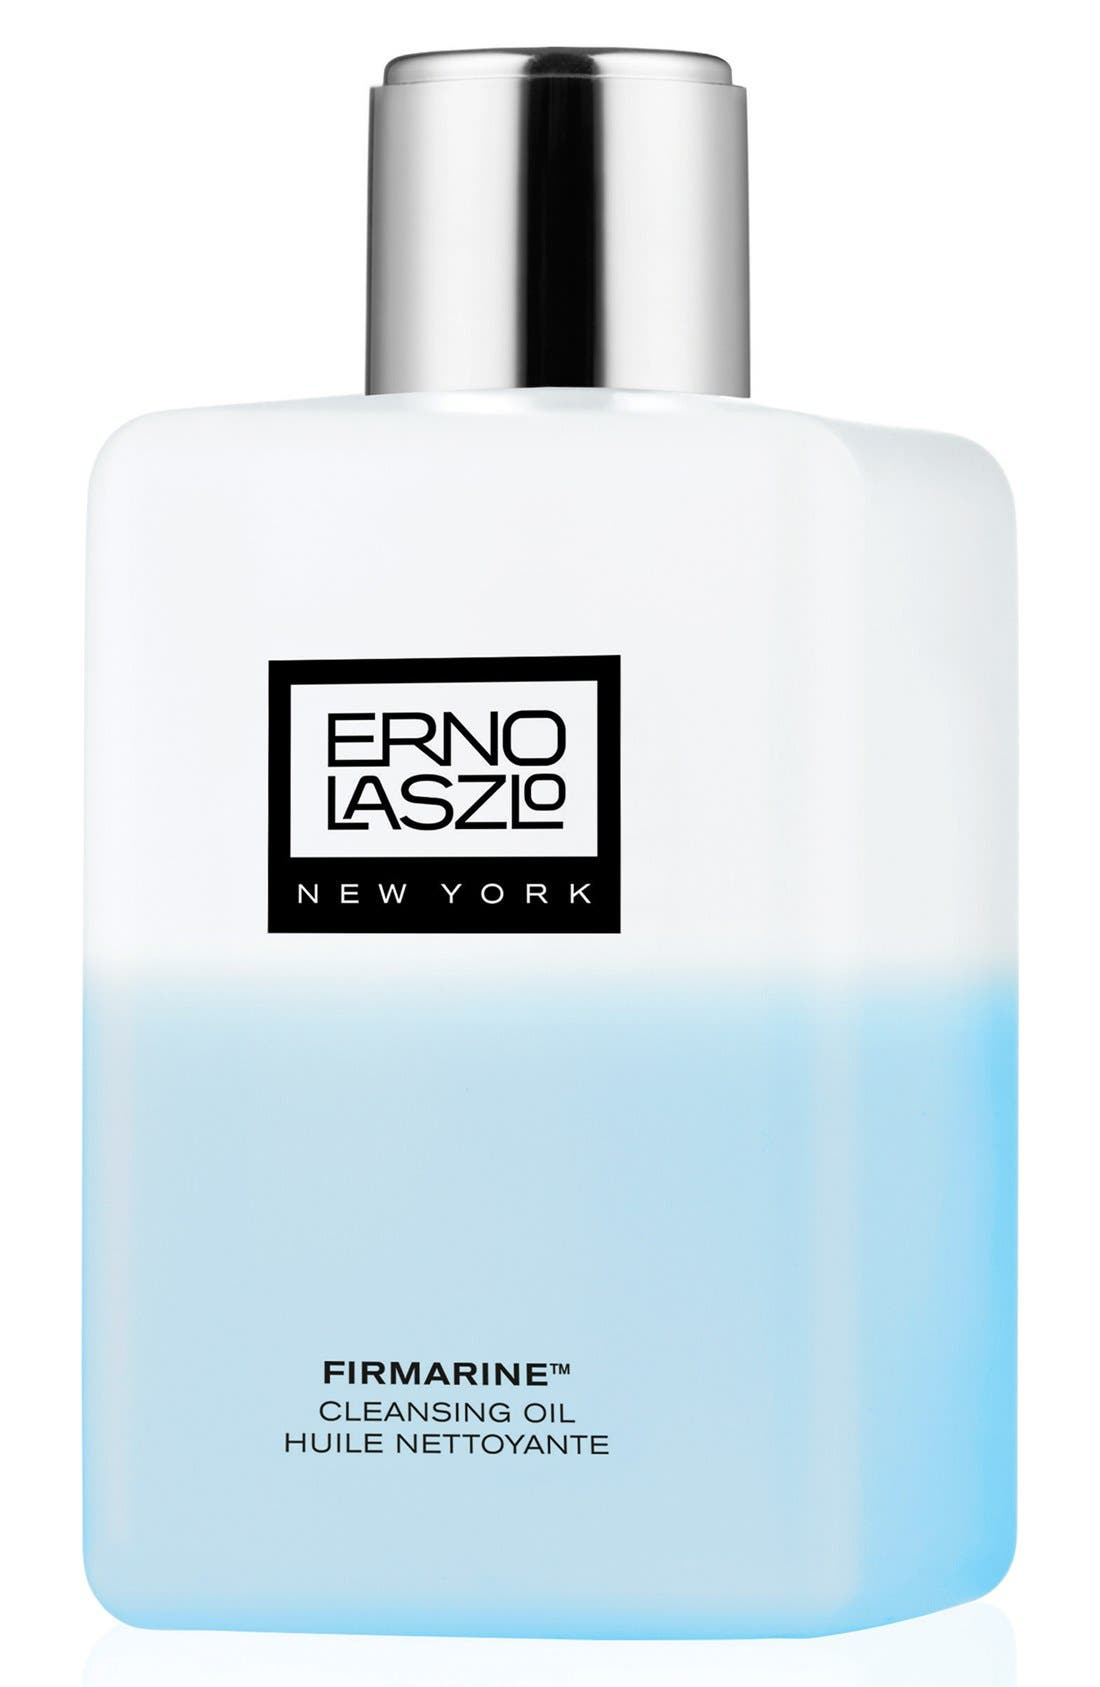 'Firmarine' Cleansing Oil,                             Main thumbnail 1, color,                             NO COLOR